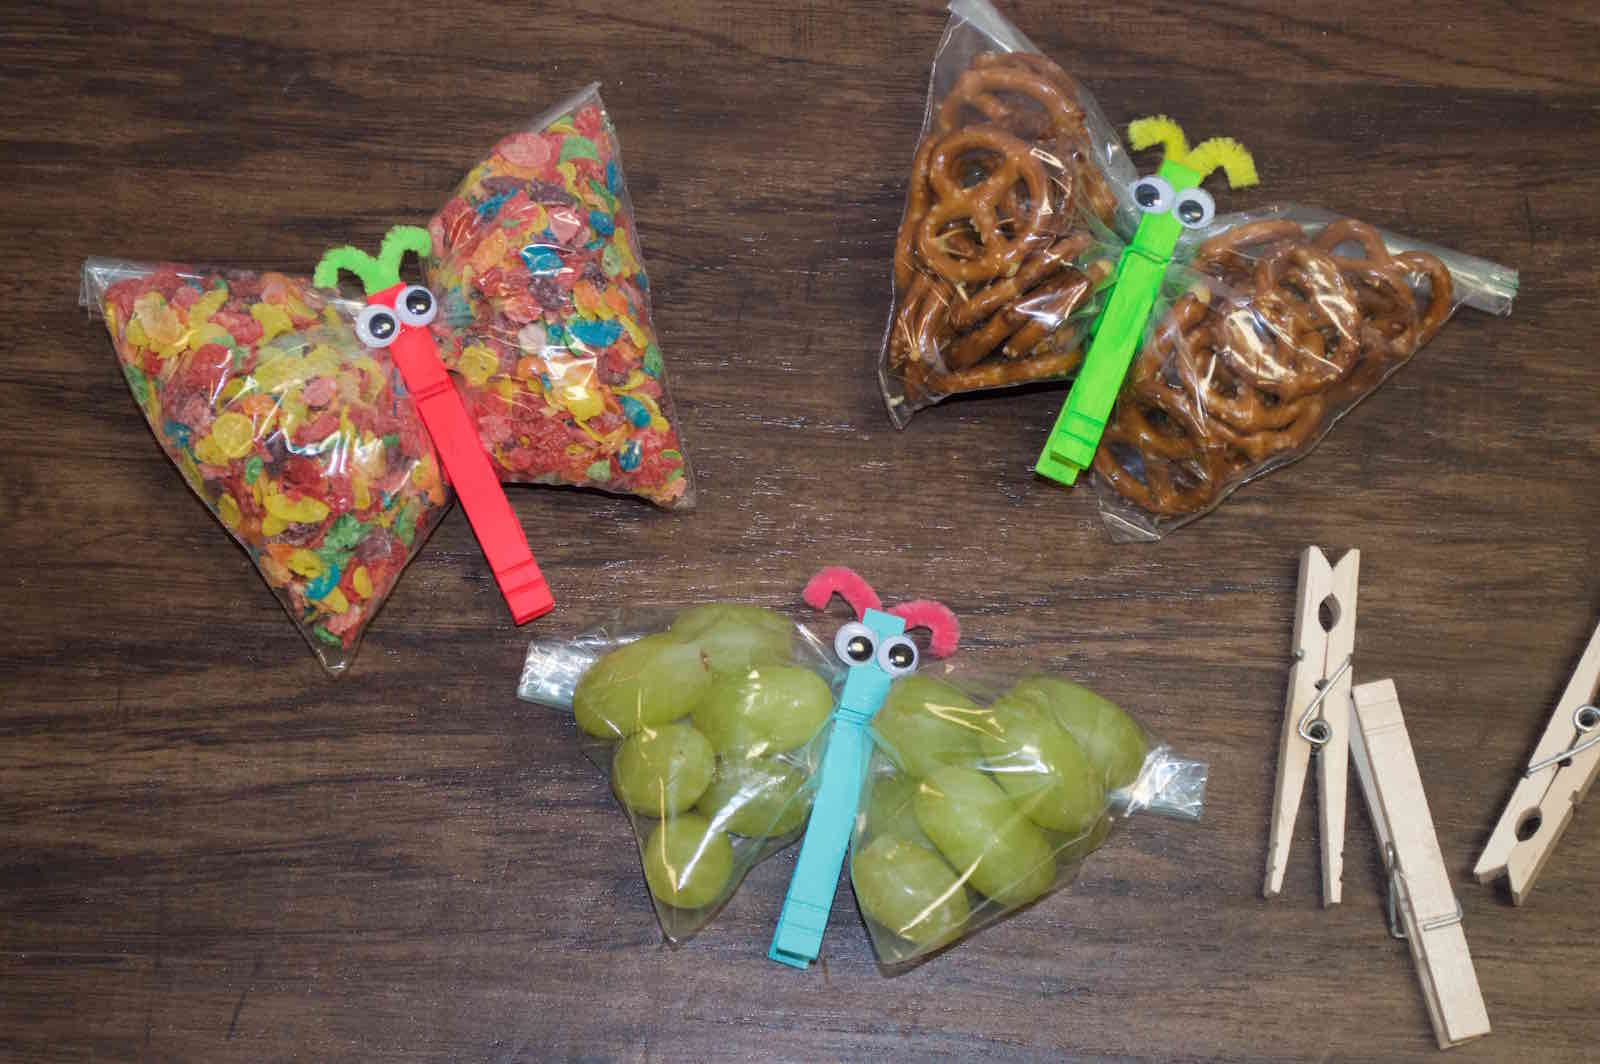 Liven Up Lunchtime With This Easy To Make Erfly Snack Bag And A Little